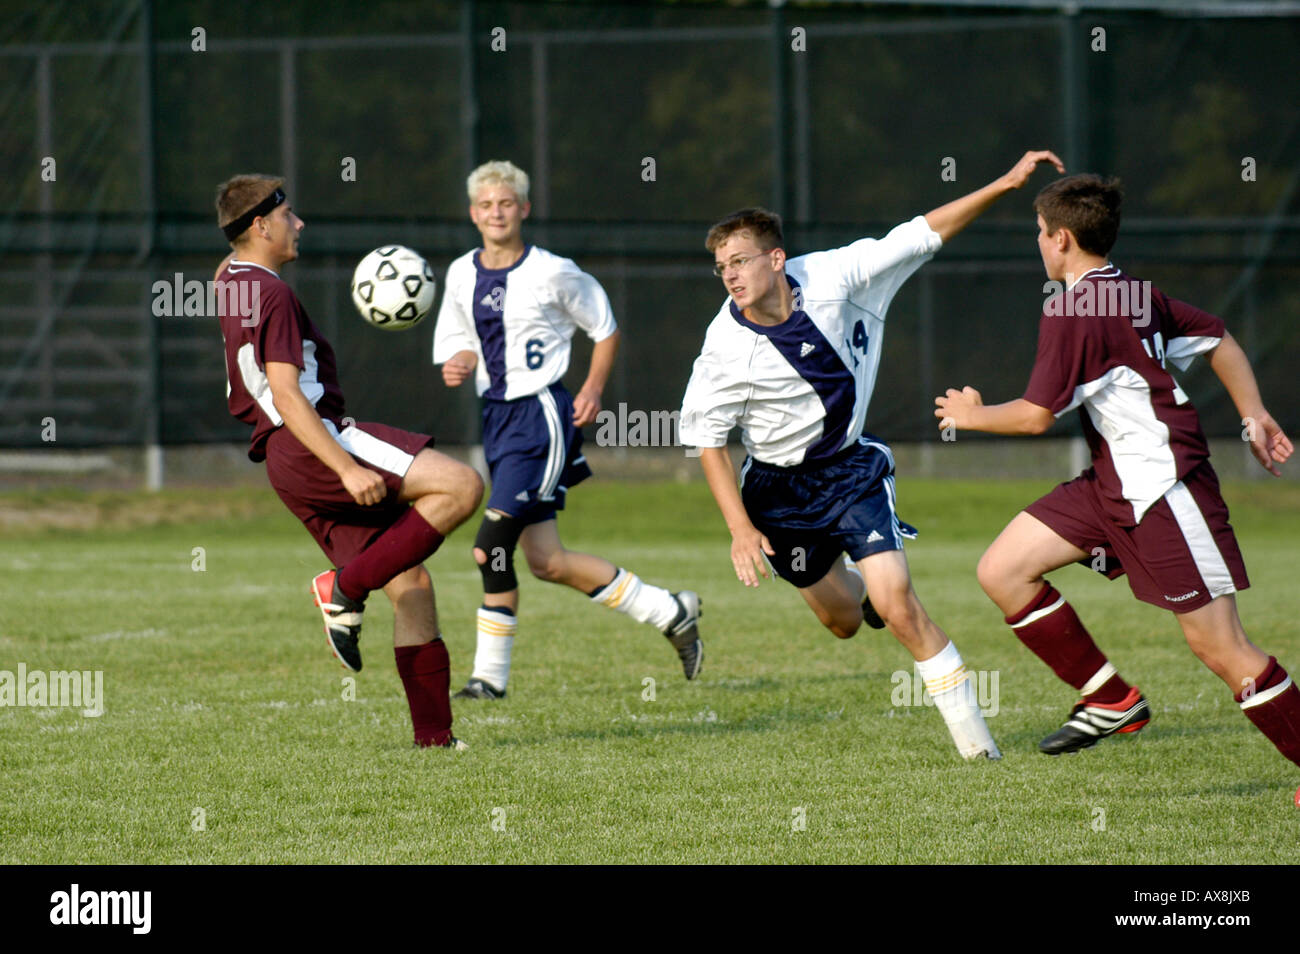 American High School Fußball-Aktion Stockbild